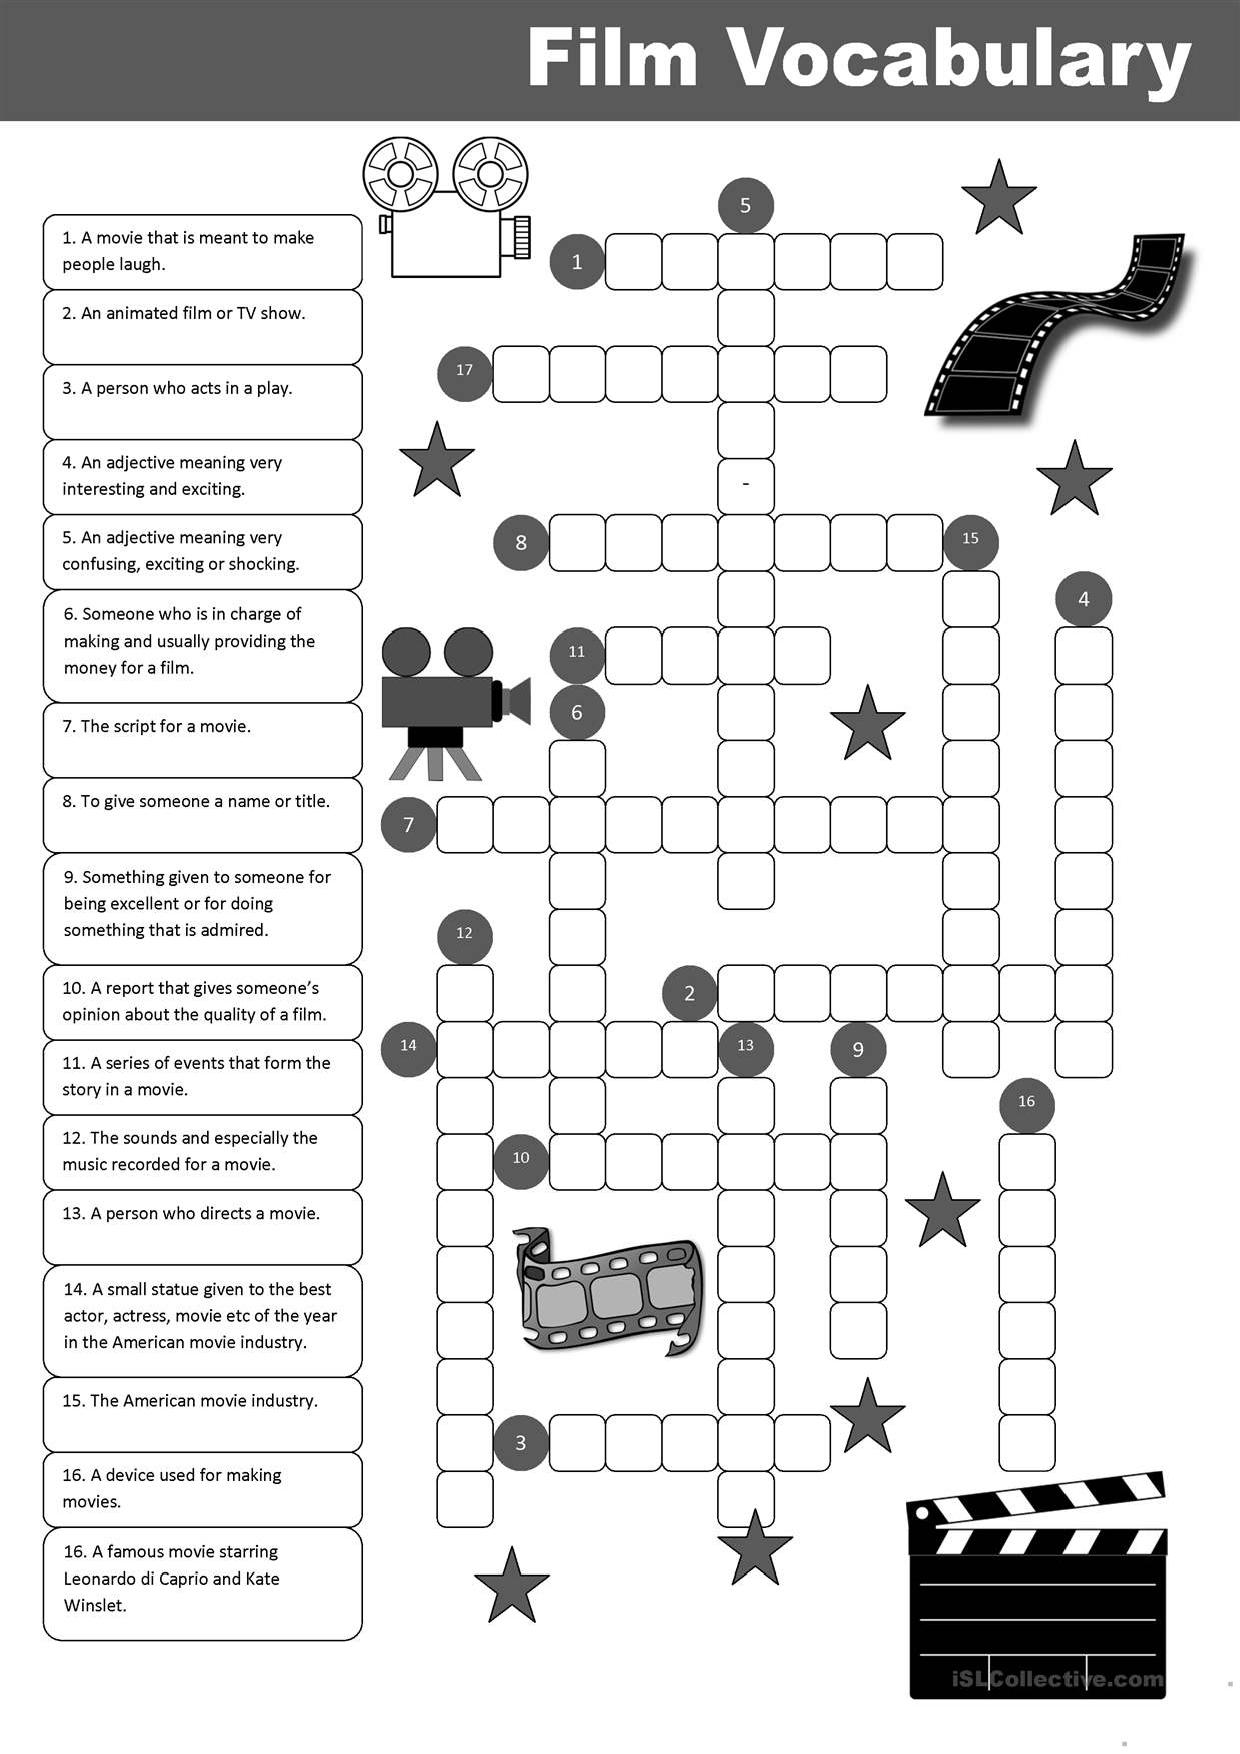 Film Vocabulary Crossword Stories To Read